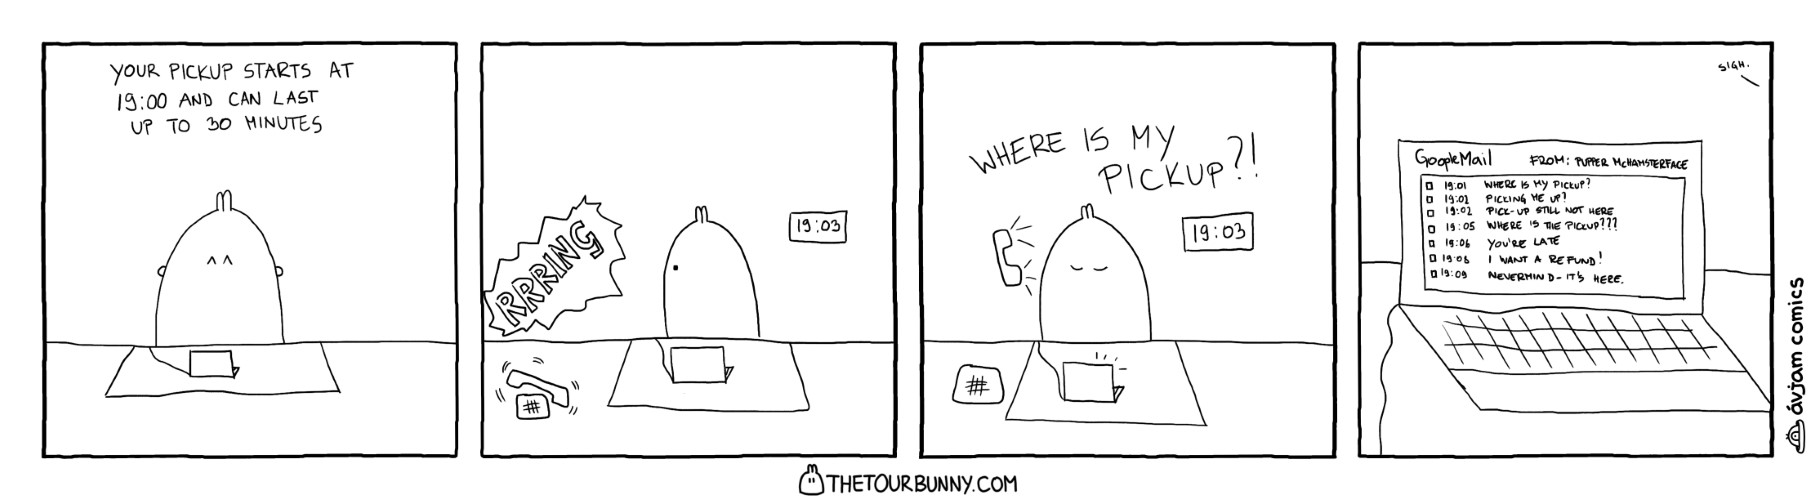 0036 – The Pickup